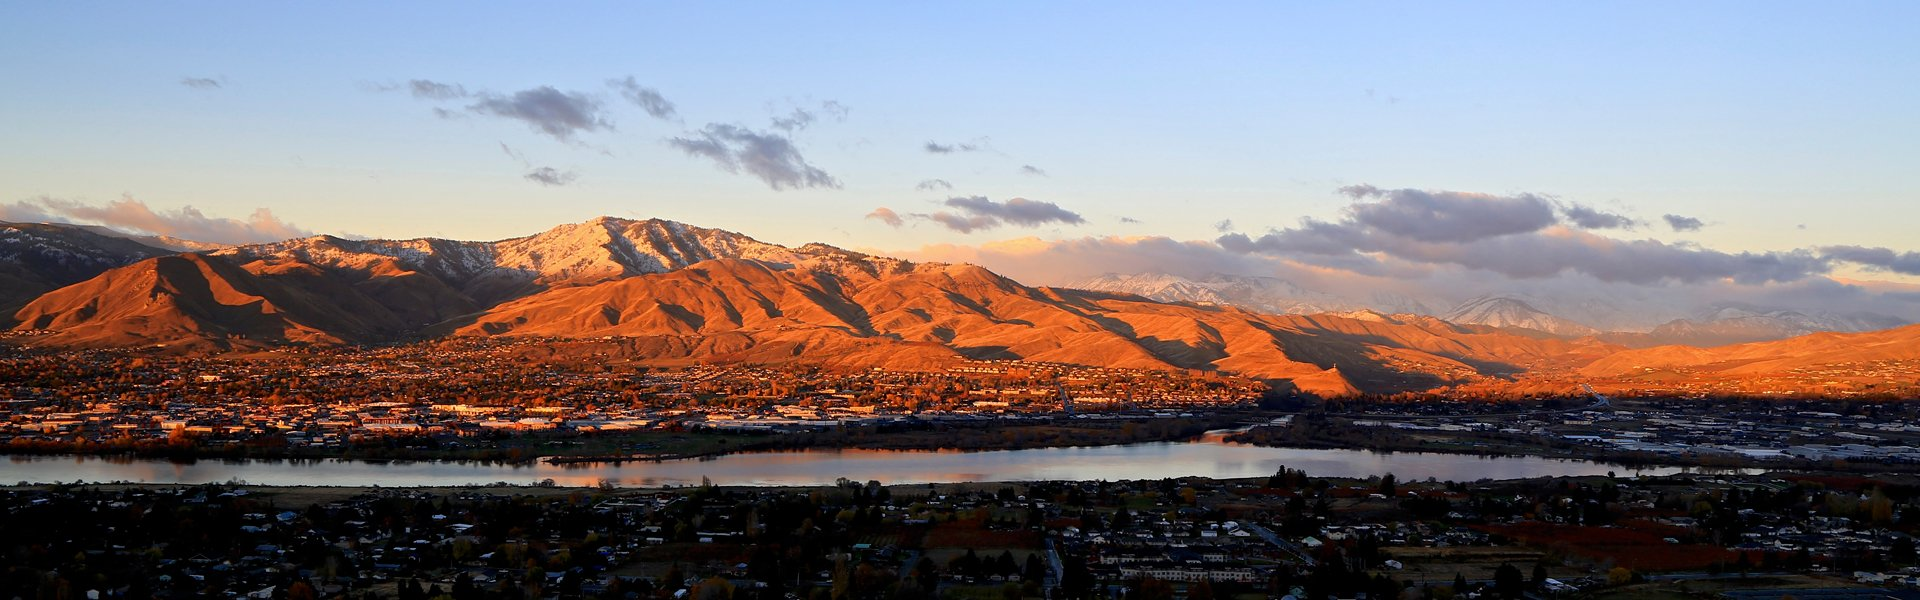 The Wenatchee Valley taken by Michael Bendtsen.